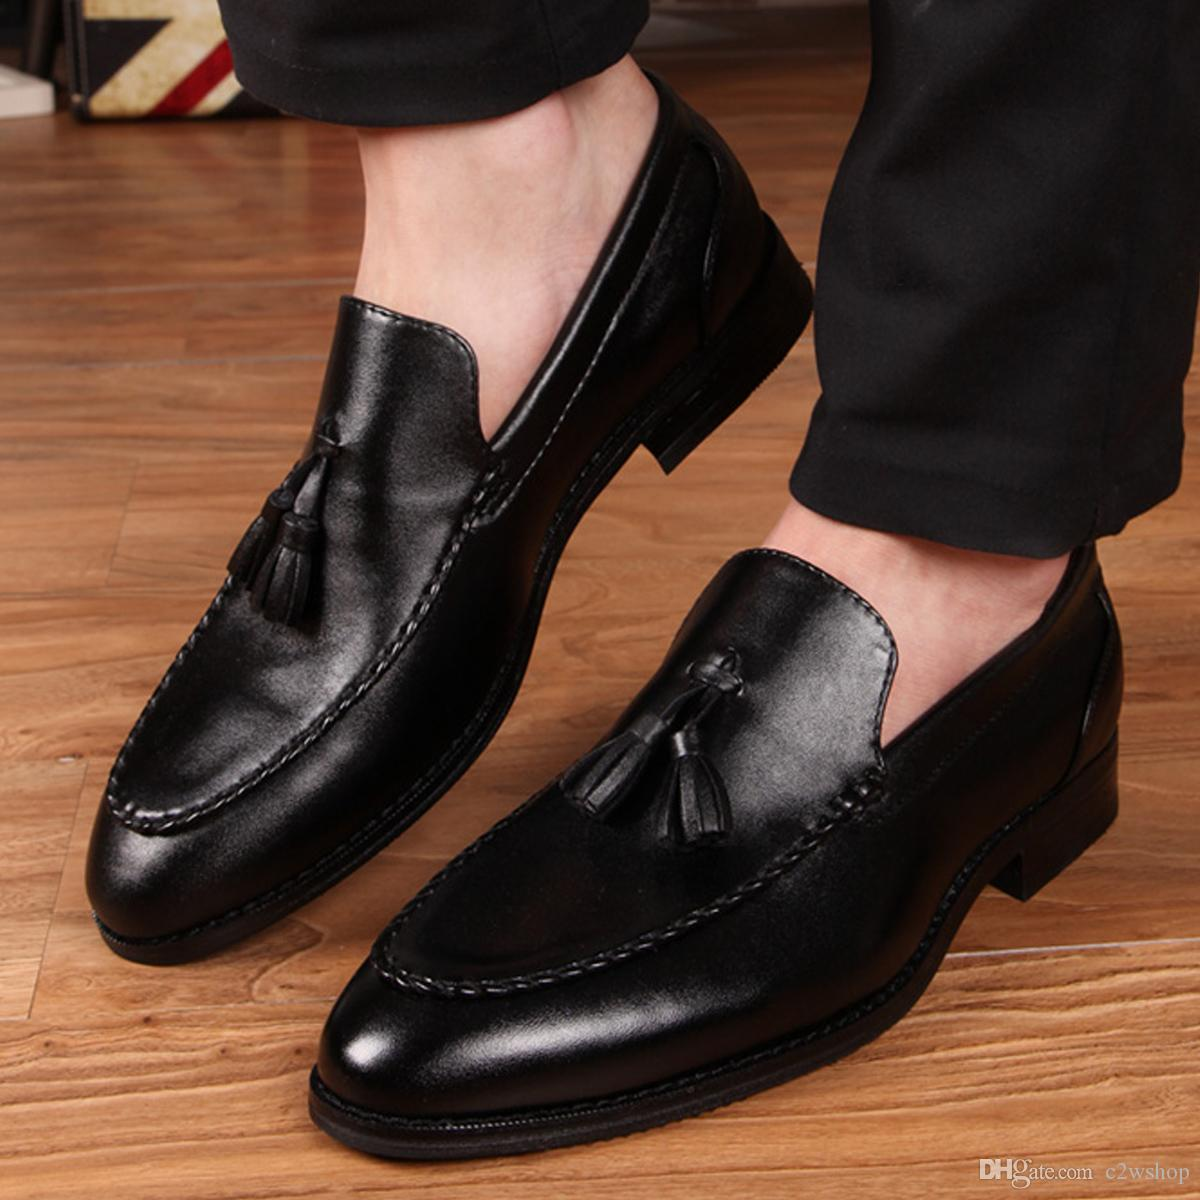 Discount On Branded Formal Shoes